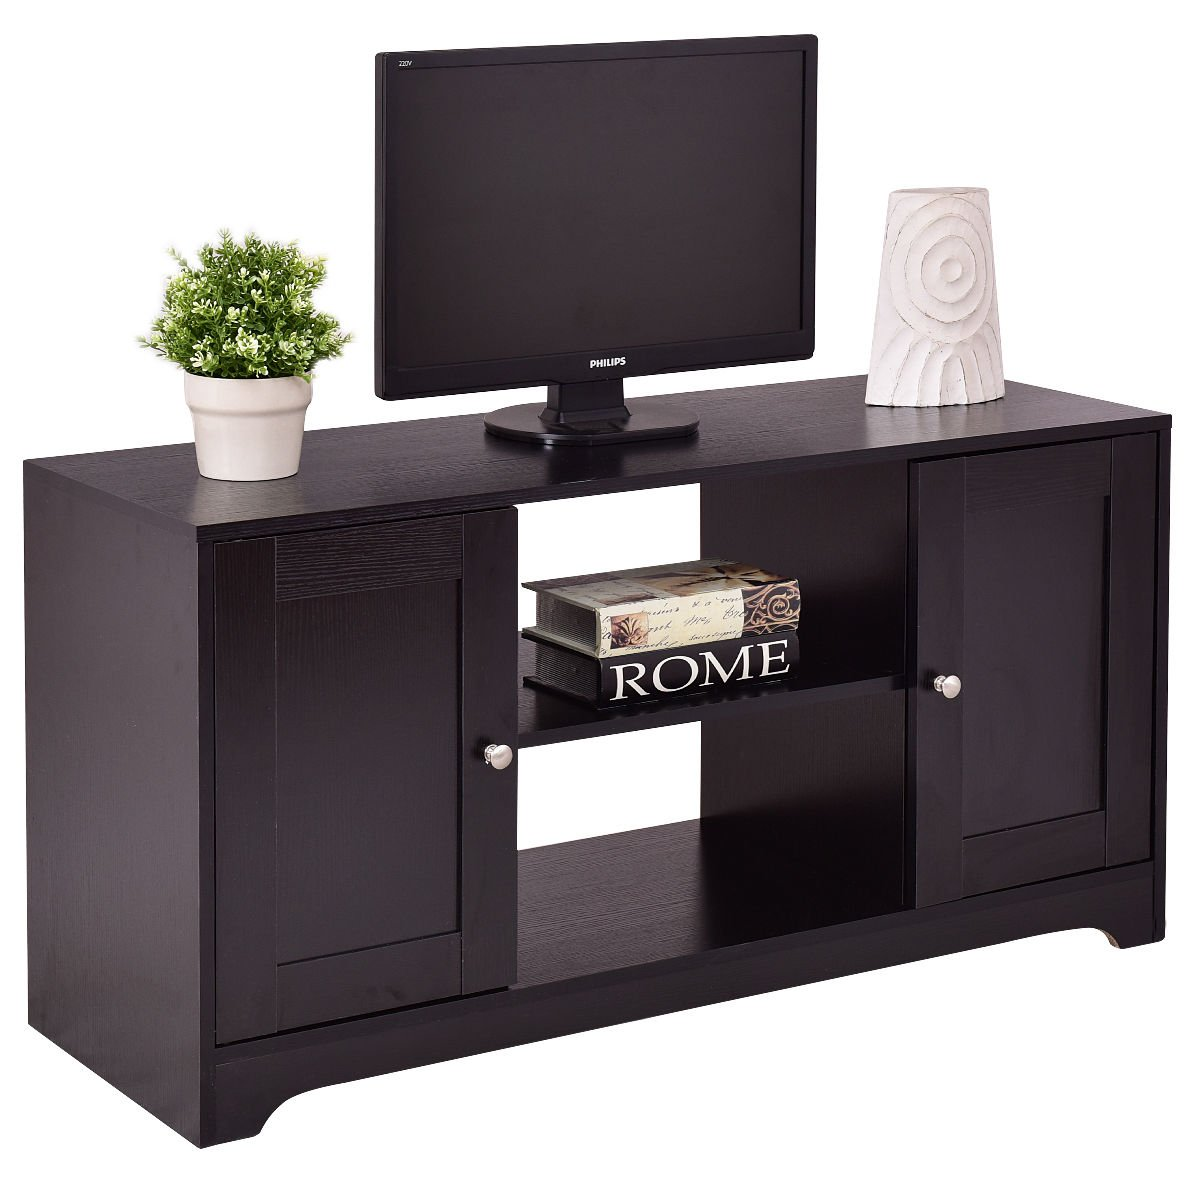 Wood Home Furniture TV Stand Entertainment Media Center Console Storage Cabinet